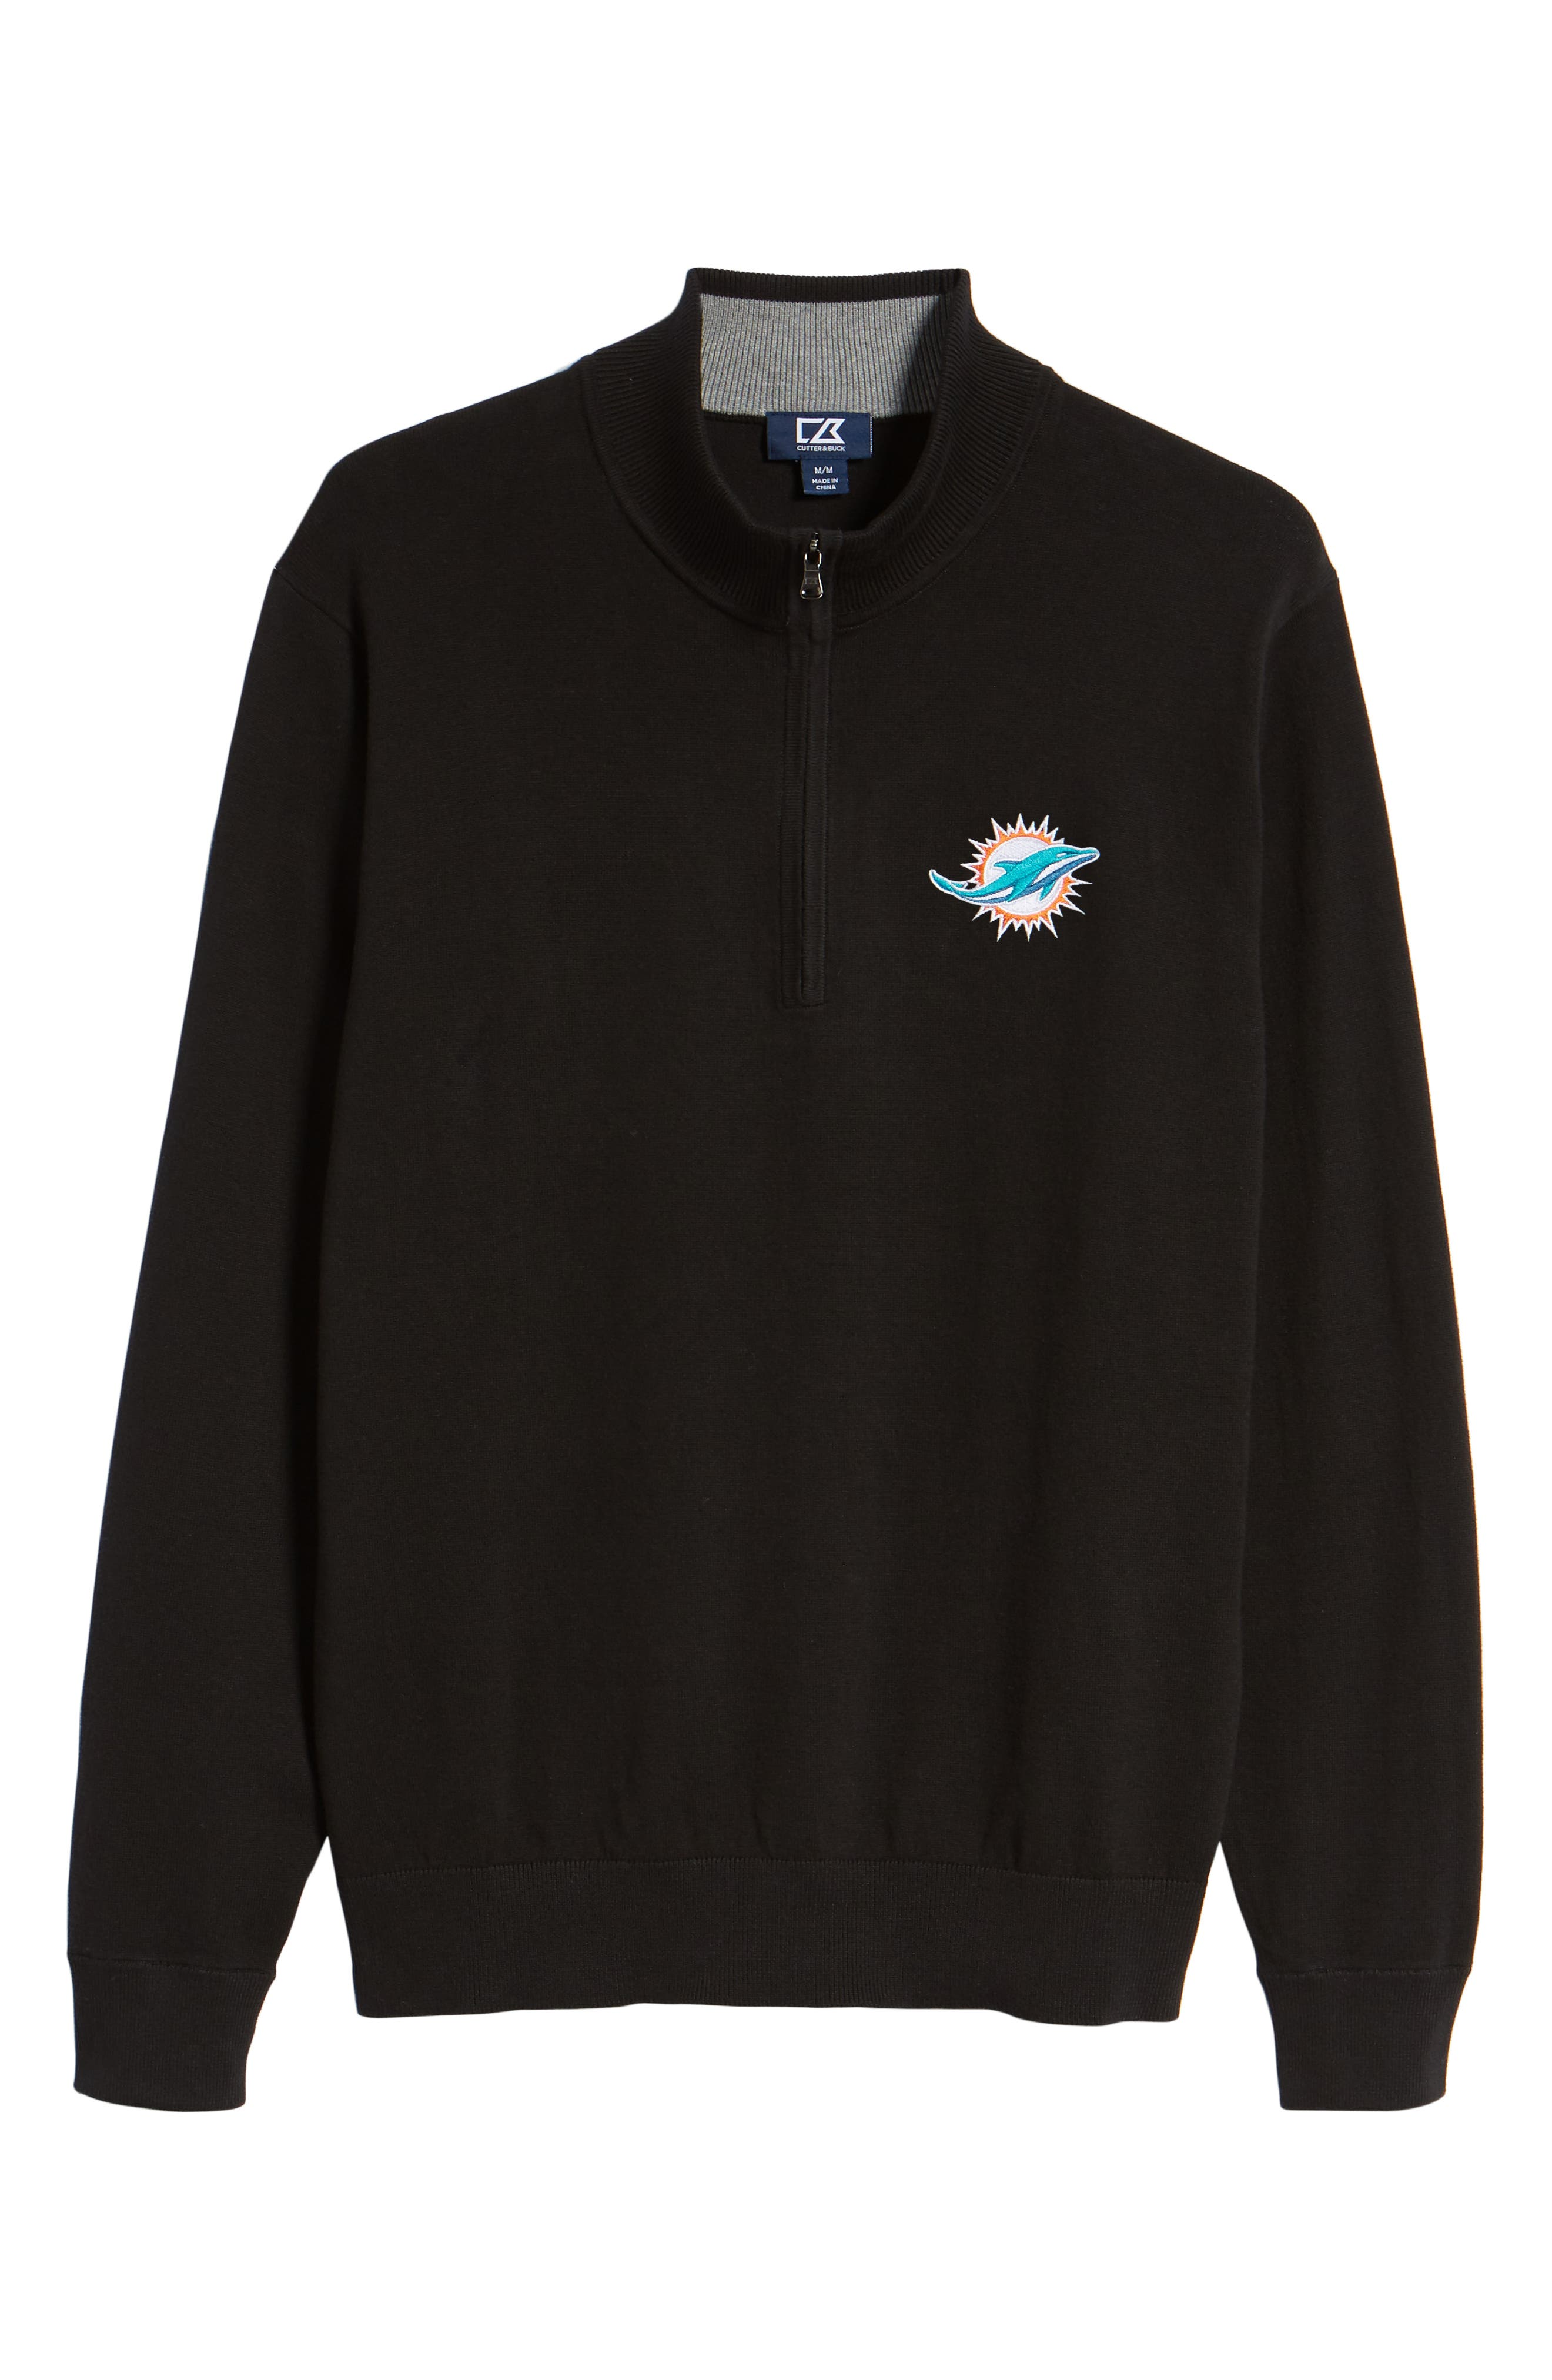 Miami Dolphins - Lakemont Regular Fit Quarter Zip Sweater,                             Alternate thumbnail 6, color,                             BLACK